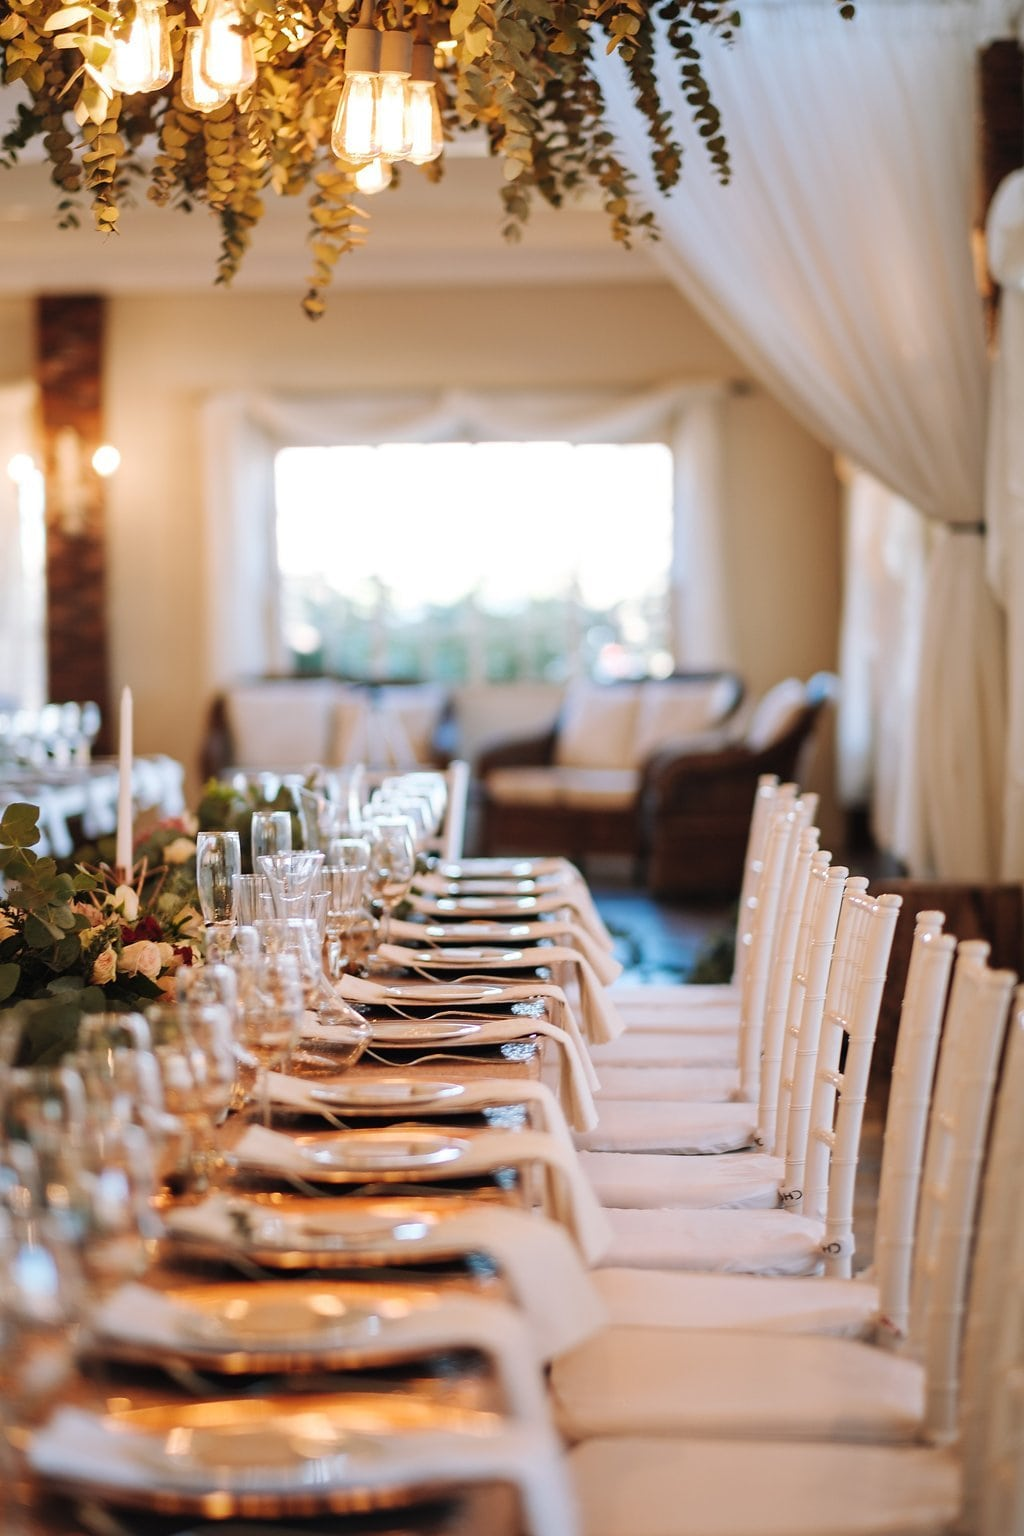 Winter Wedding at Bellwood Cottages | Image: The Shank Tank